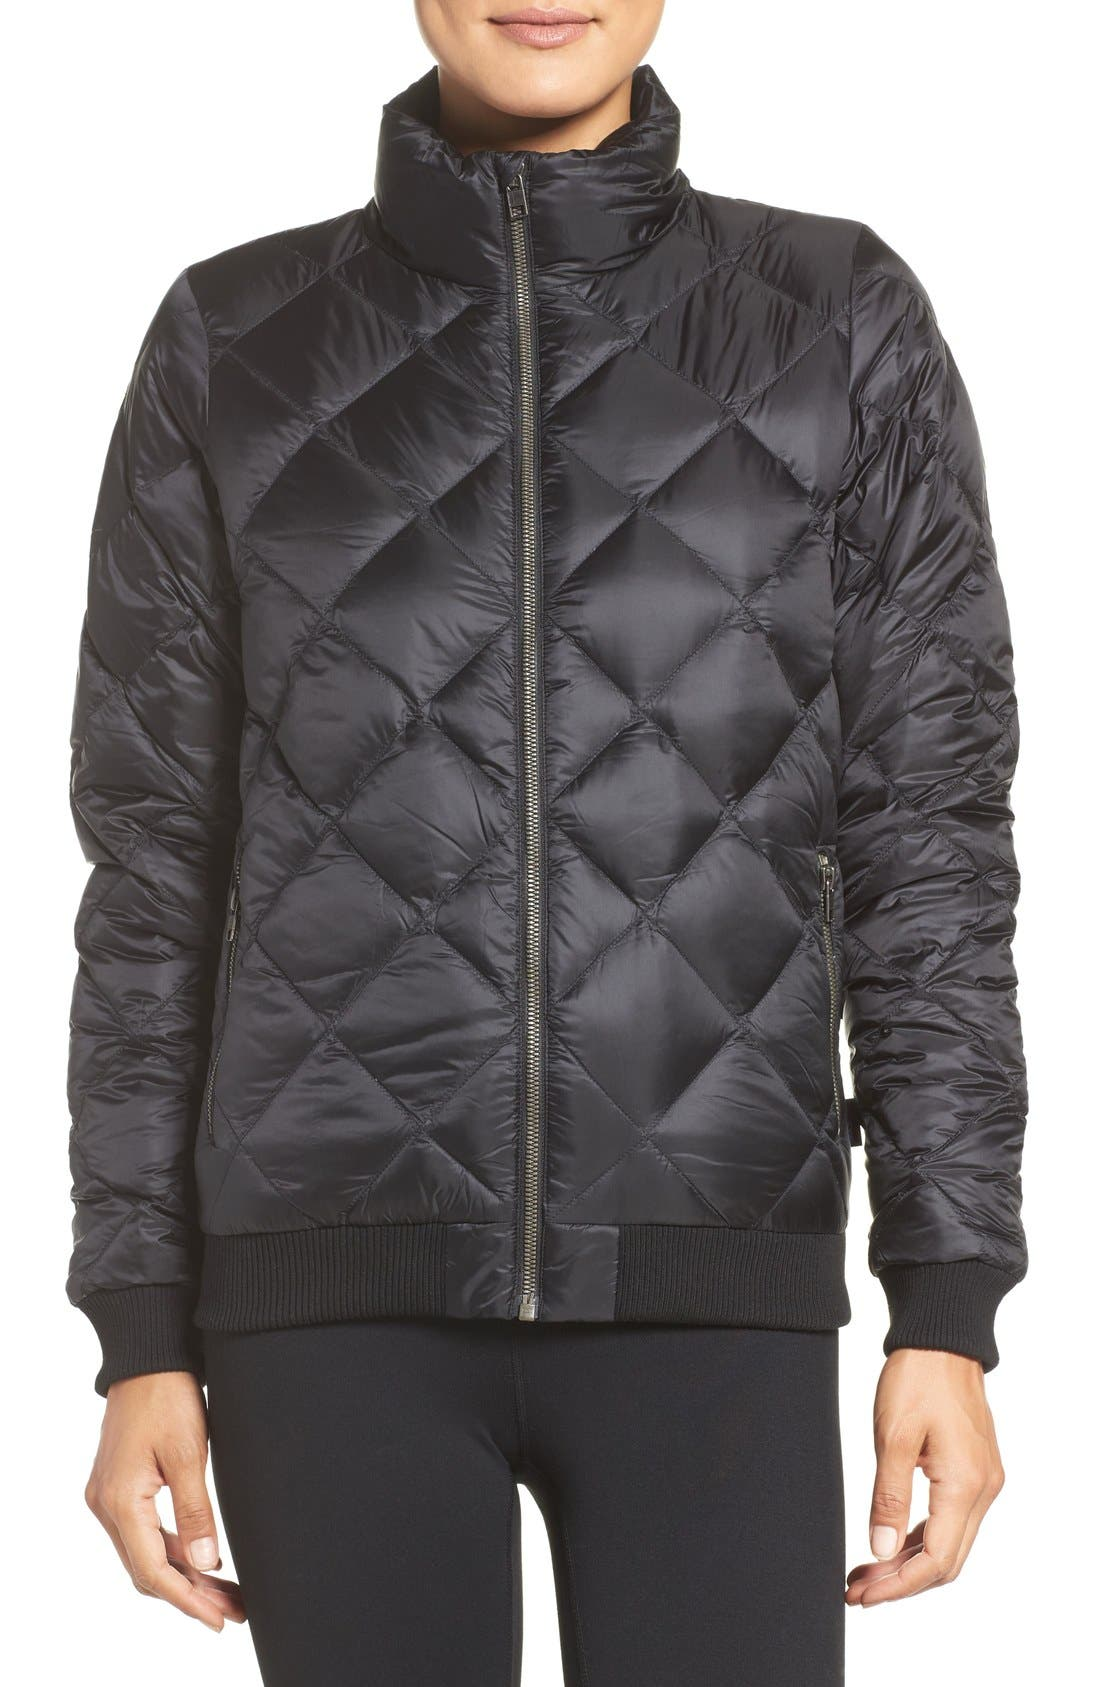 Alternate Image 1 Selected - Patagonia Prow Down Bomber Jacket